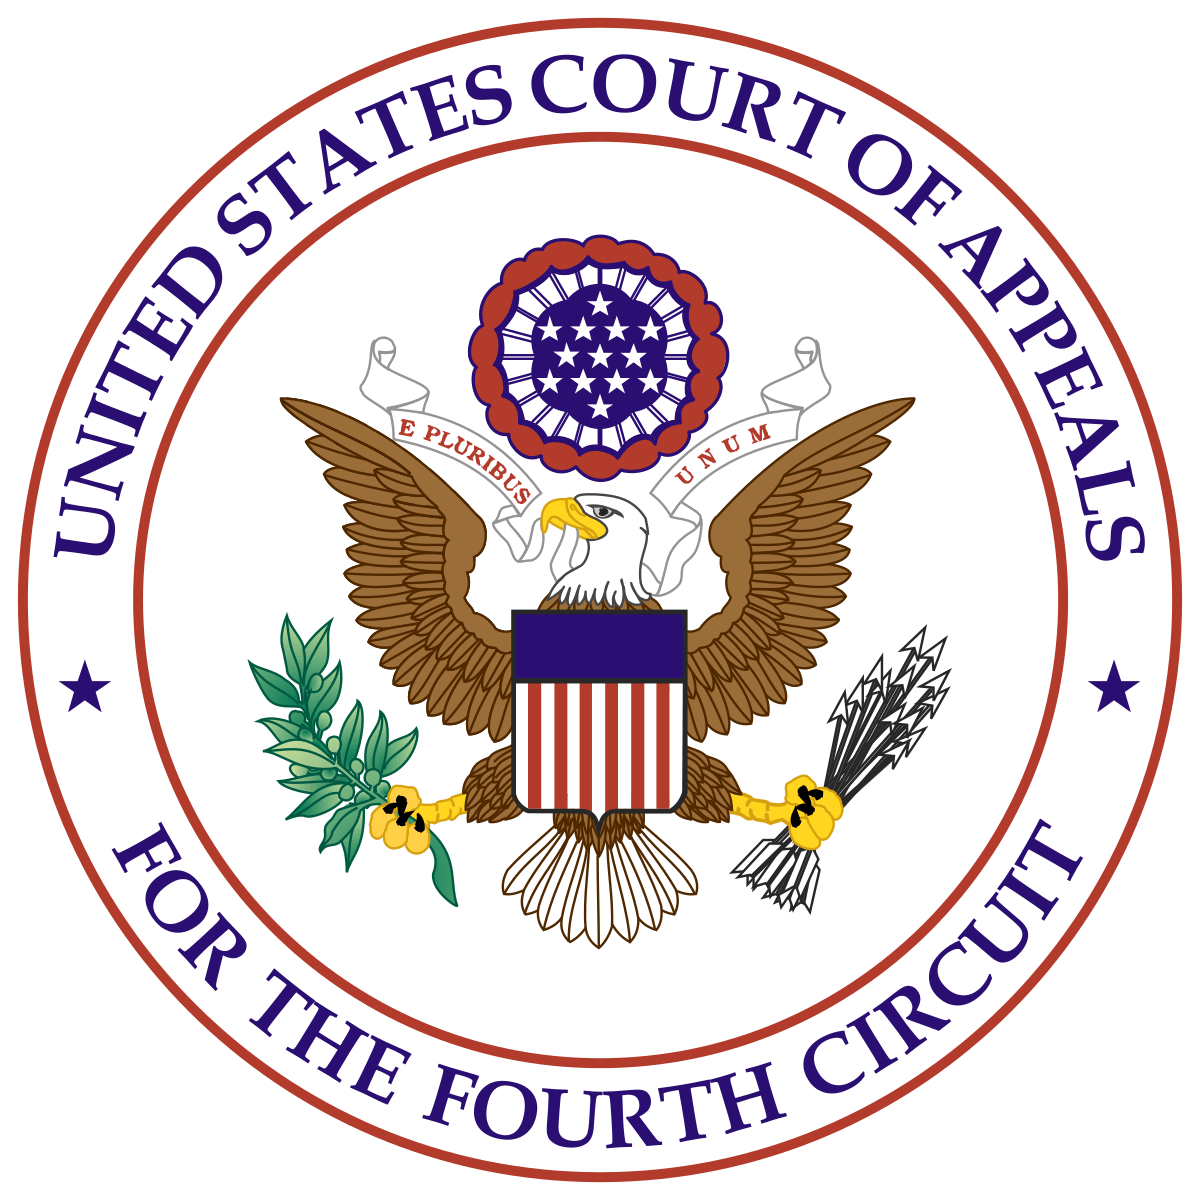 Seal_of_the_United_States_Court_of_Appeals_for_the_Fourth_Circuit.svg (1).png